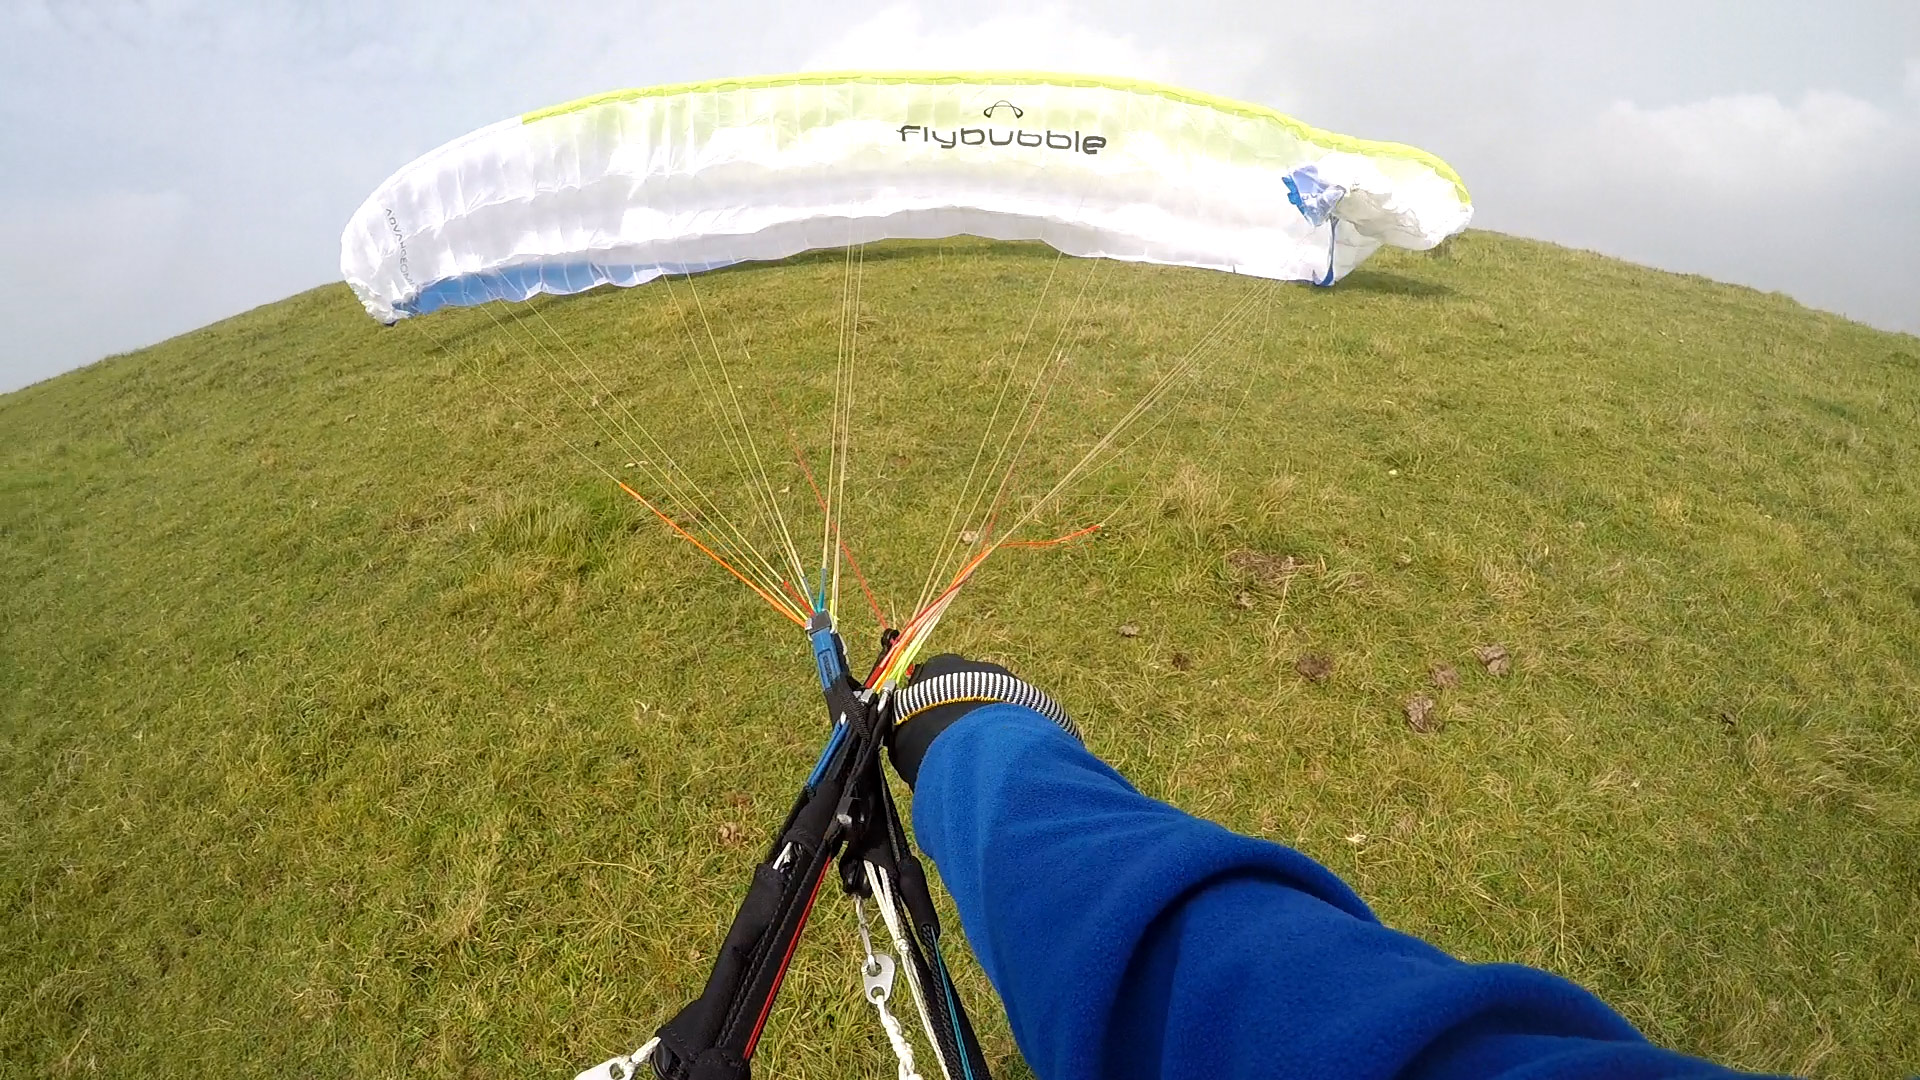 How to fix a cravatte on a paraglider: launch practice